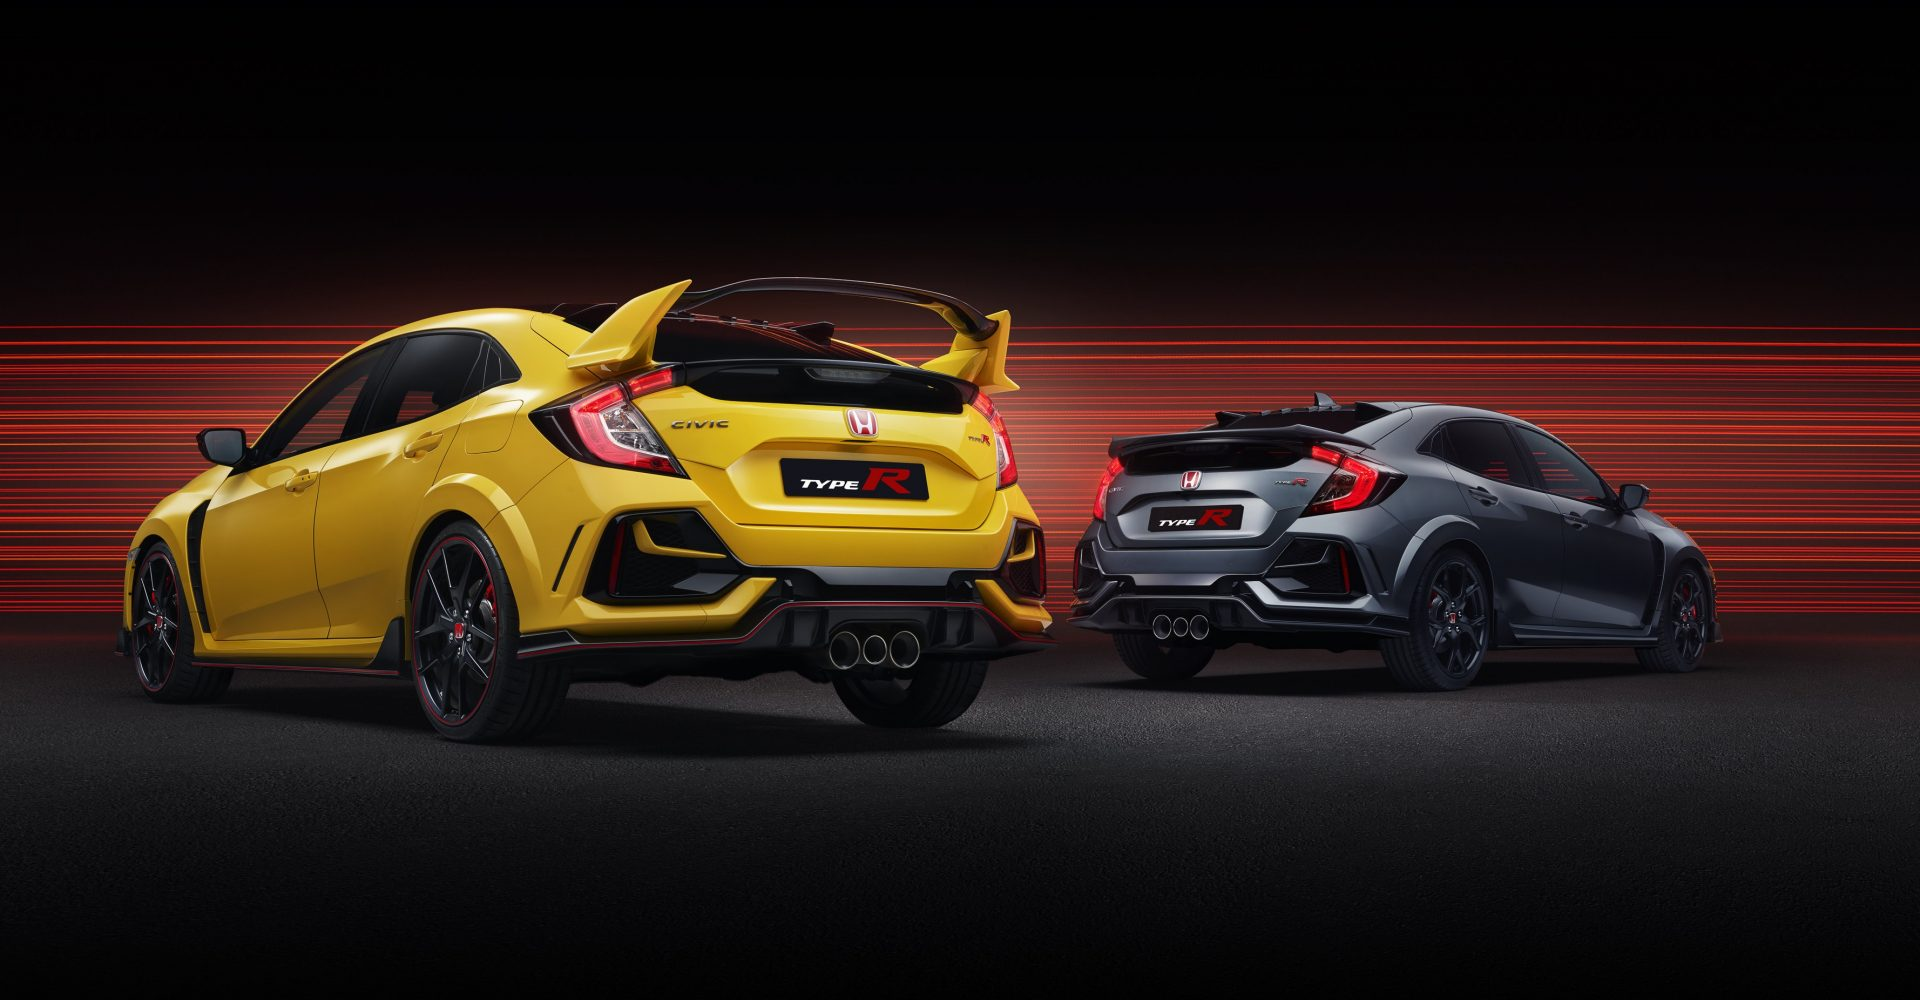 Refreshed Honda Civic Type R range sees hardcore variant and stealthier options introduced